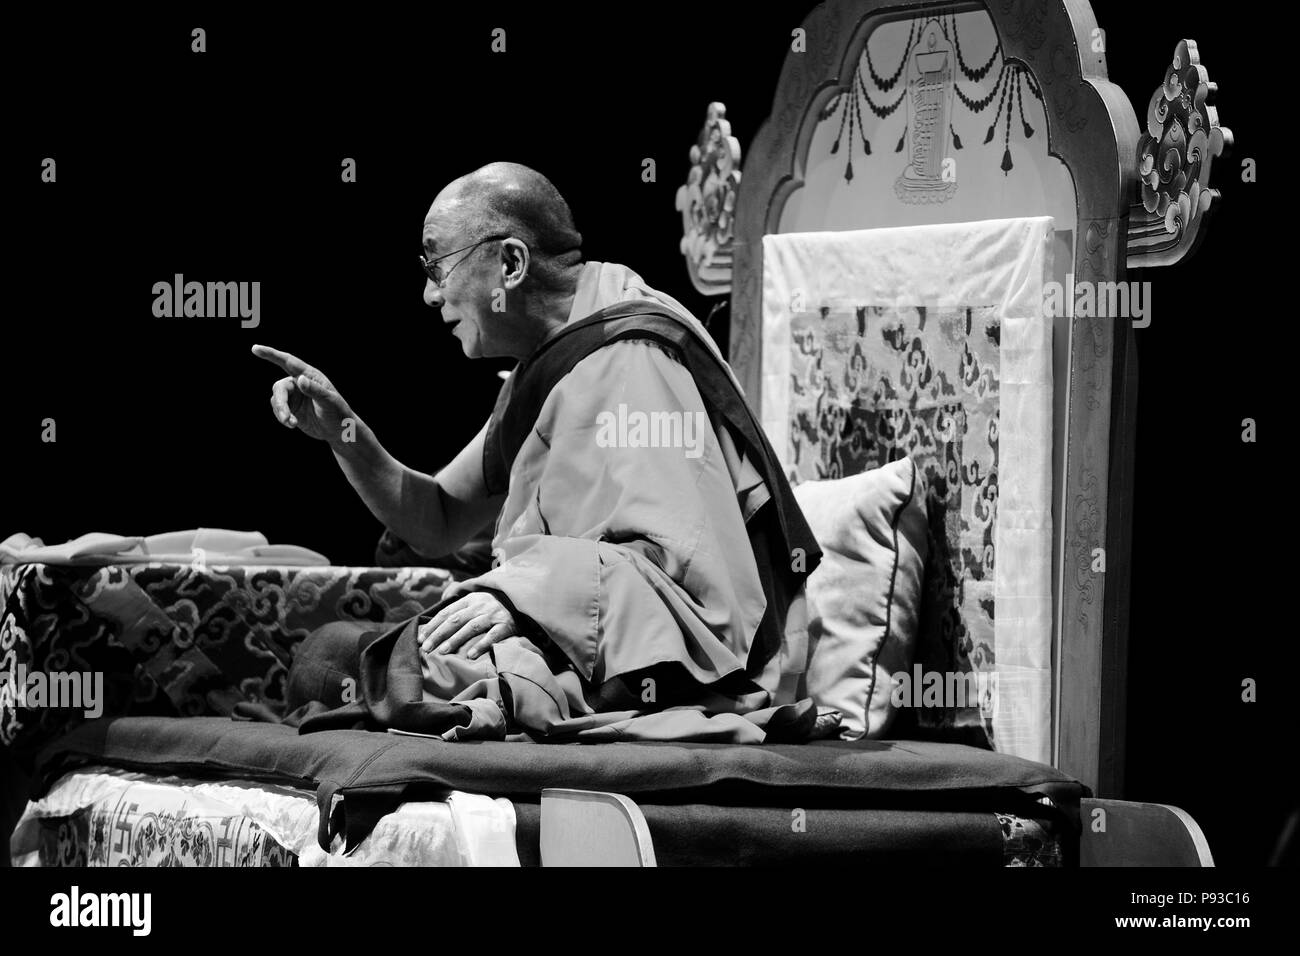 The14th DALAI LAMA teaches ATISHAS LAMP FOR THE PATH TO ENLIGHTENMENT in October 2007 sponsored by KUMBUM CHAMTSE LING & the TIBETAN CULTURAL CENTER,  Stock Photo